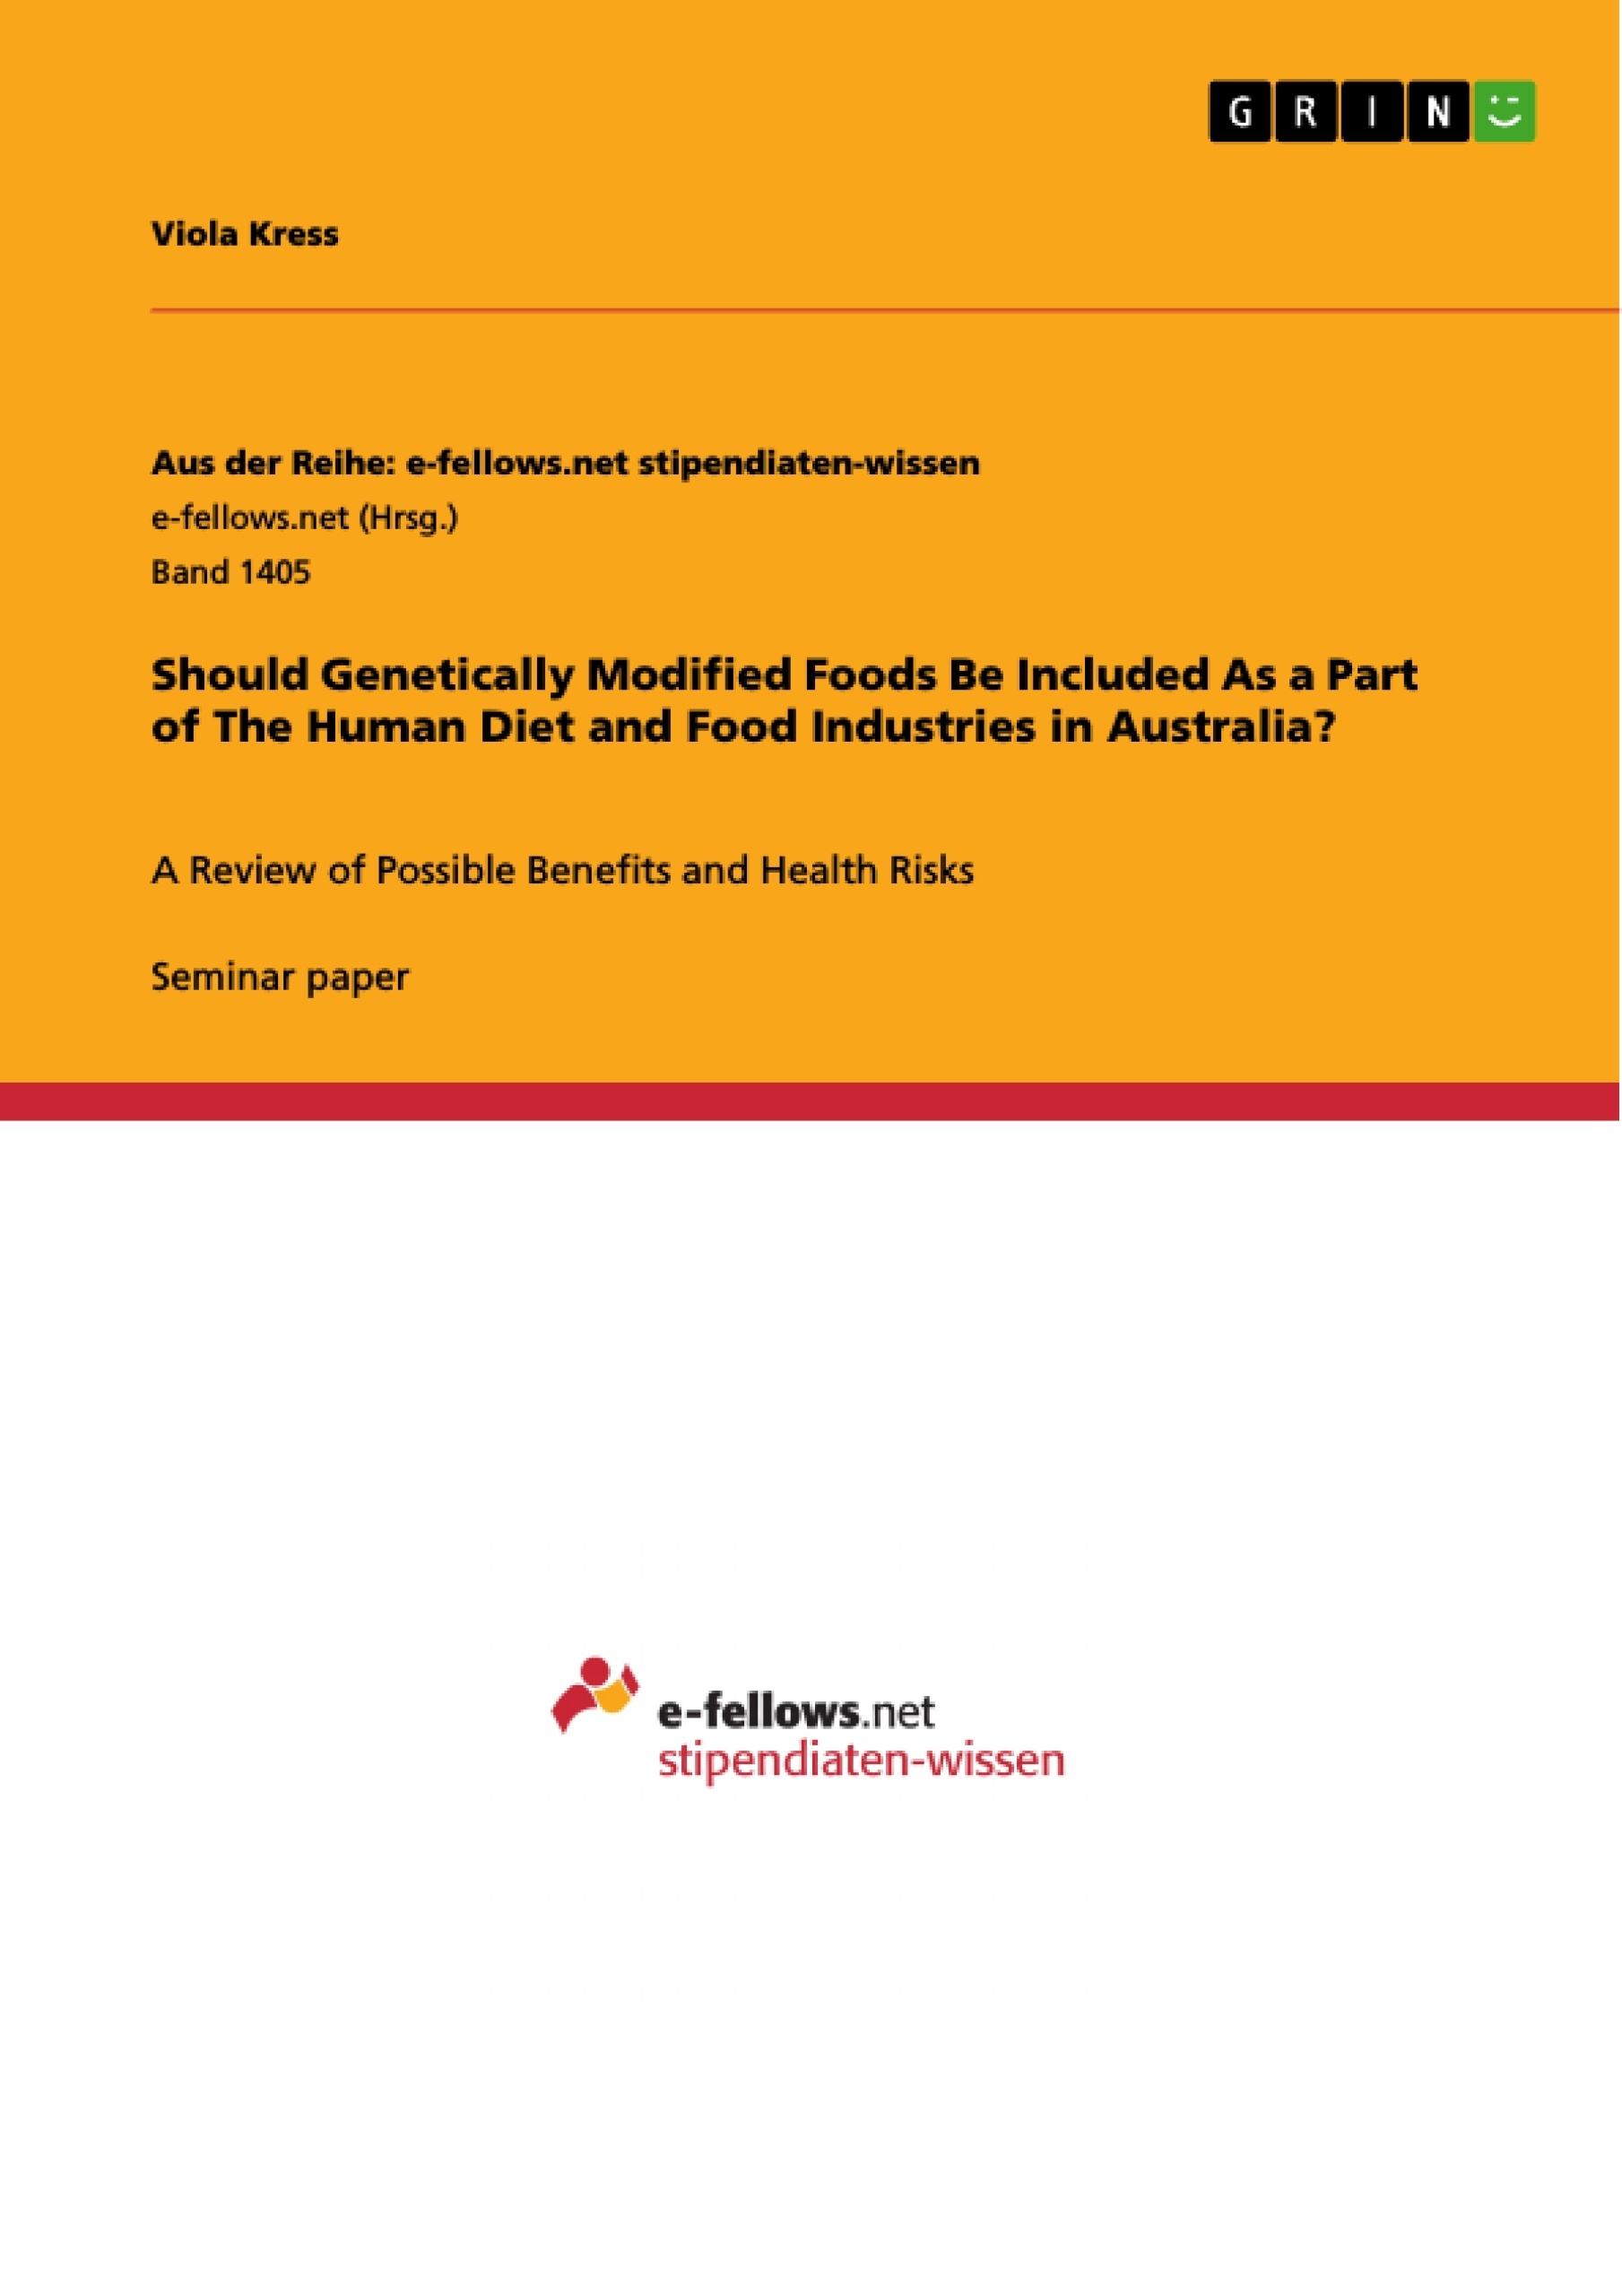 Title: Should Genetically Modified Foods Be Included As a Part of The Human Diet and Food Industries in Australia?